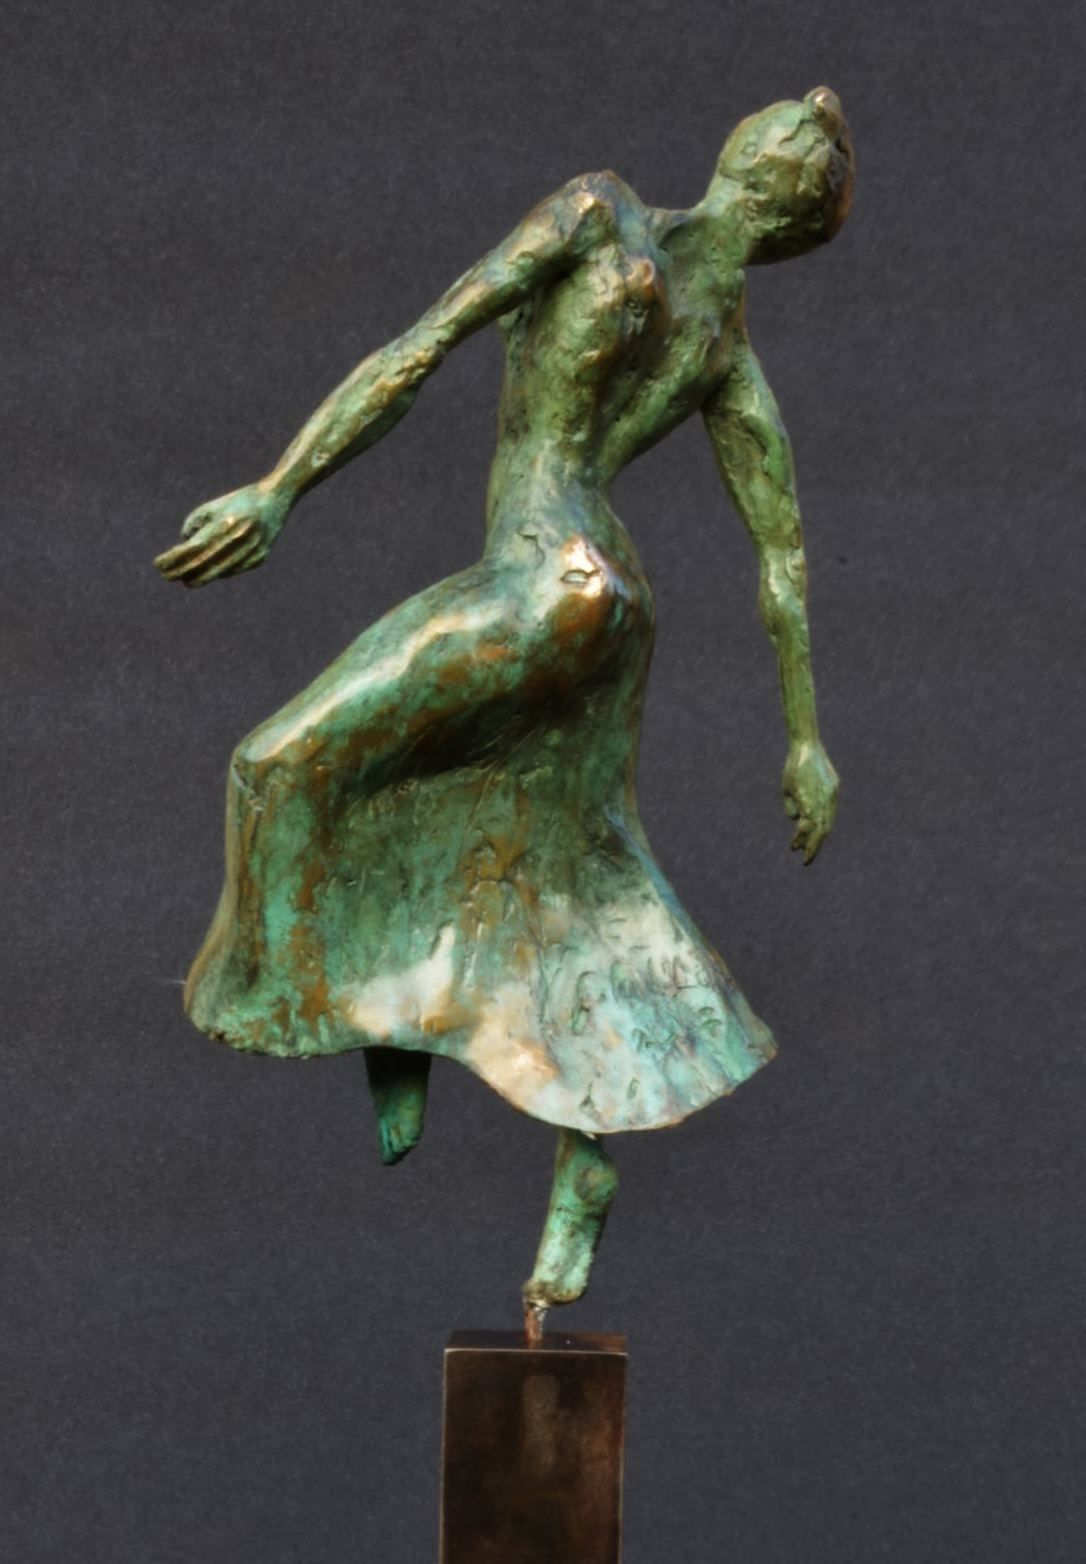 Danseuse moderne II,Yann Guillon,Sculpture contemporaine, detail 1